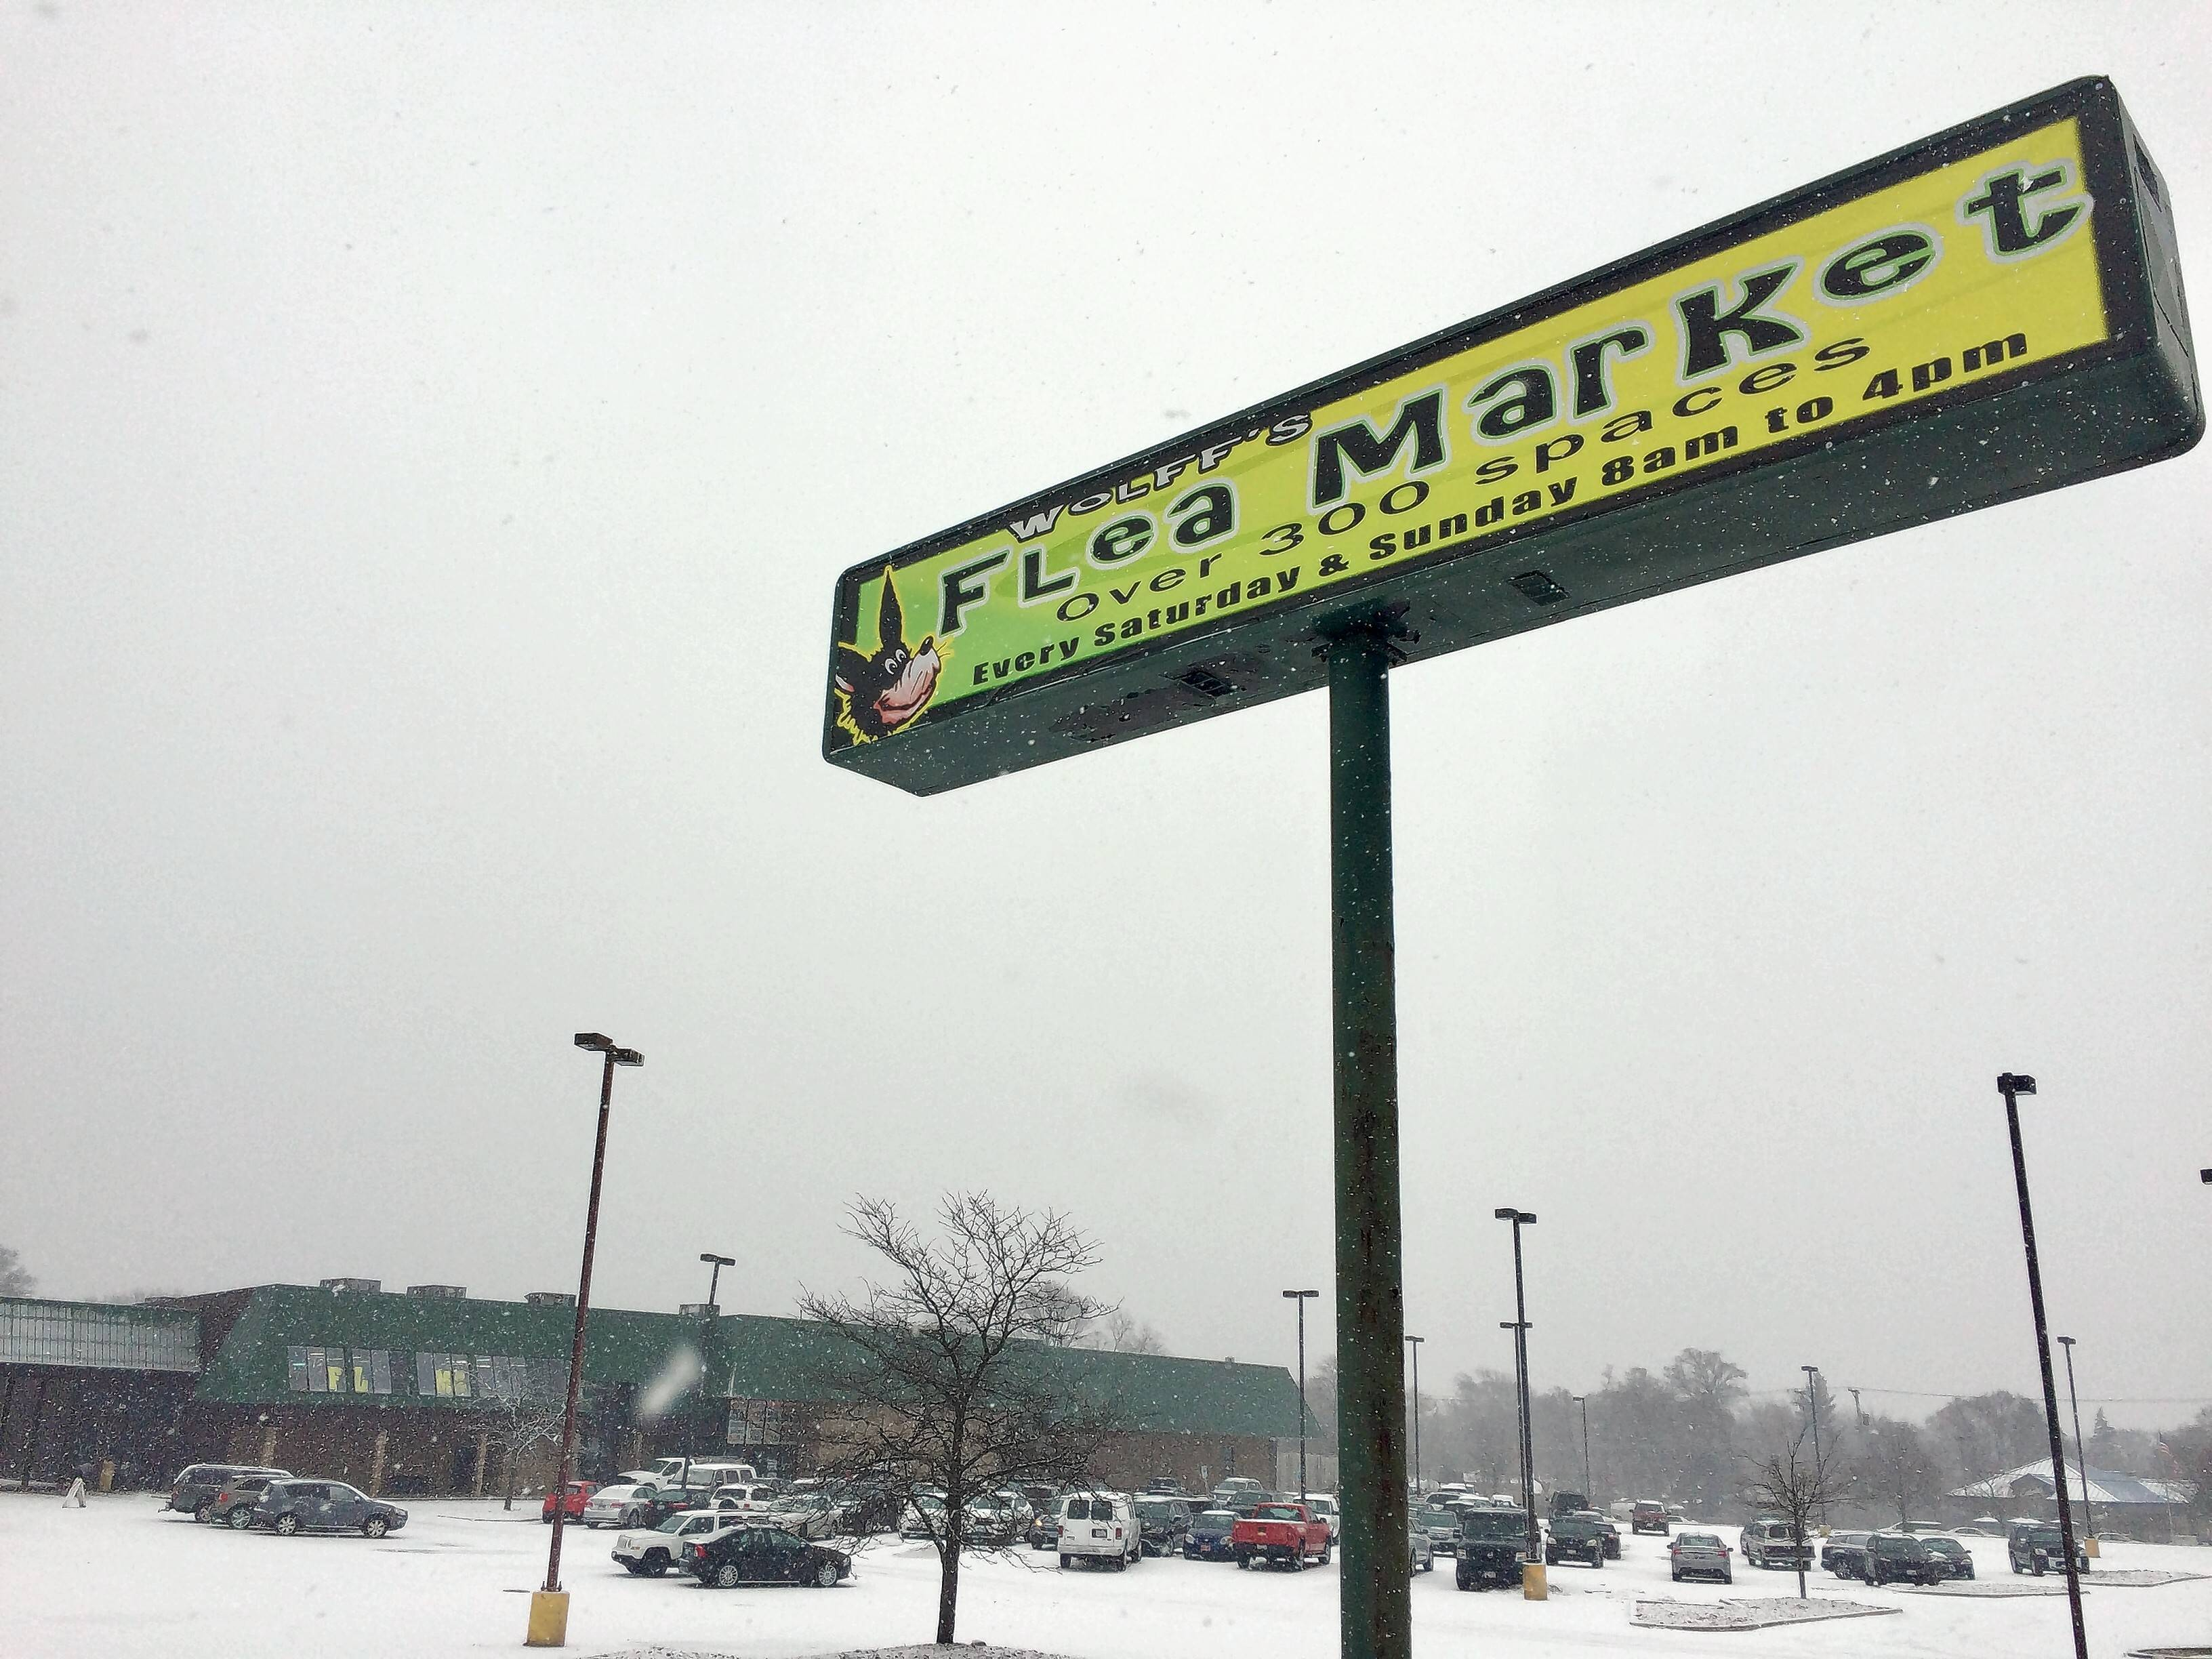 Wolff's Flea Market is heading toward its final two weekends of operation at a former Menards on Rand Road in Palatine. The Rand Road building soon will be demolished so Napleton's Automotive Group can move two dealerships from Arlington Heights to the property.